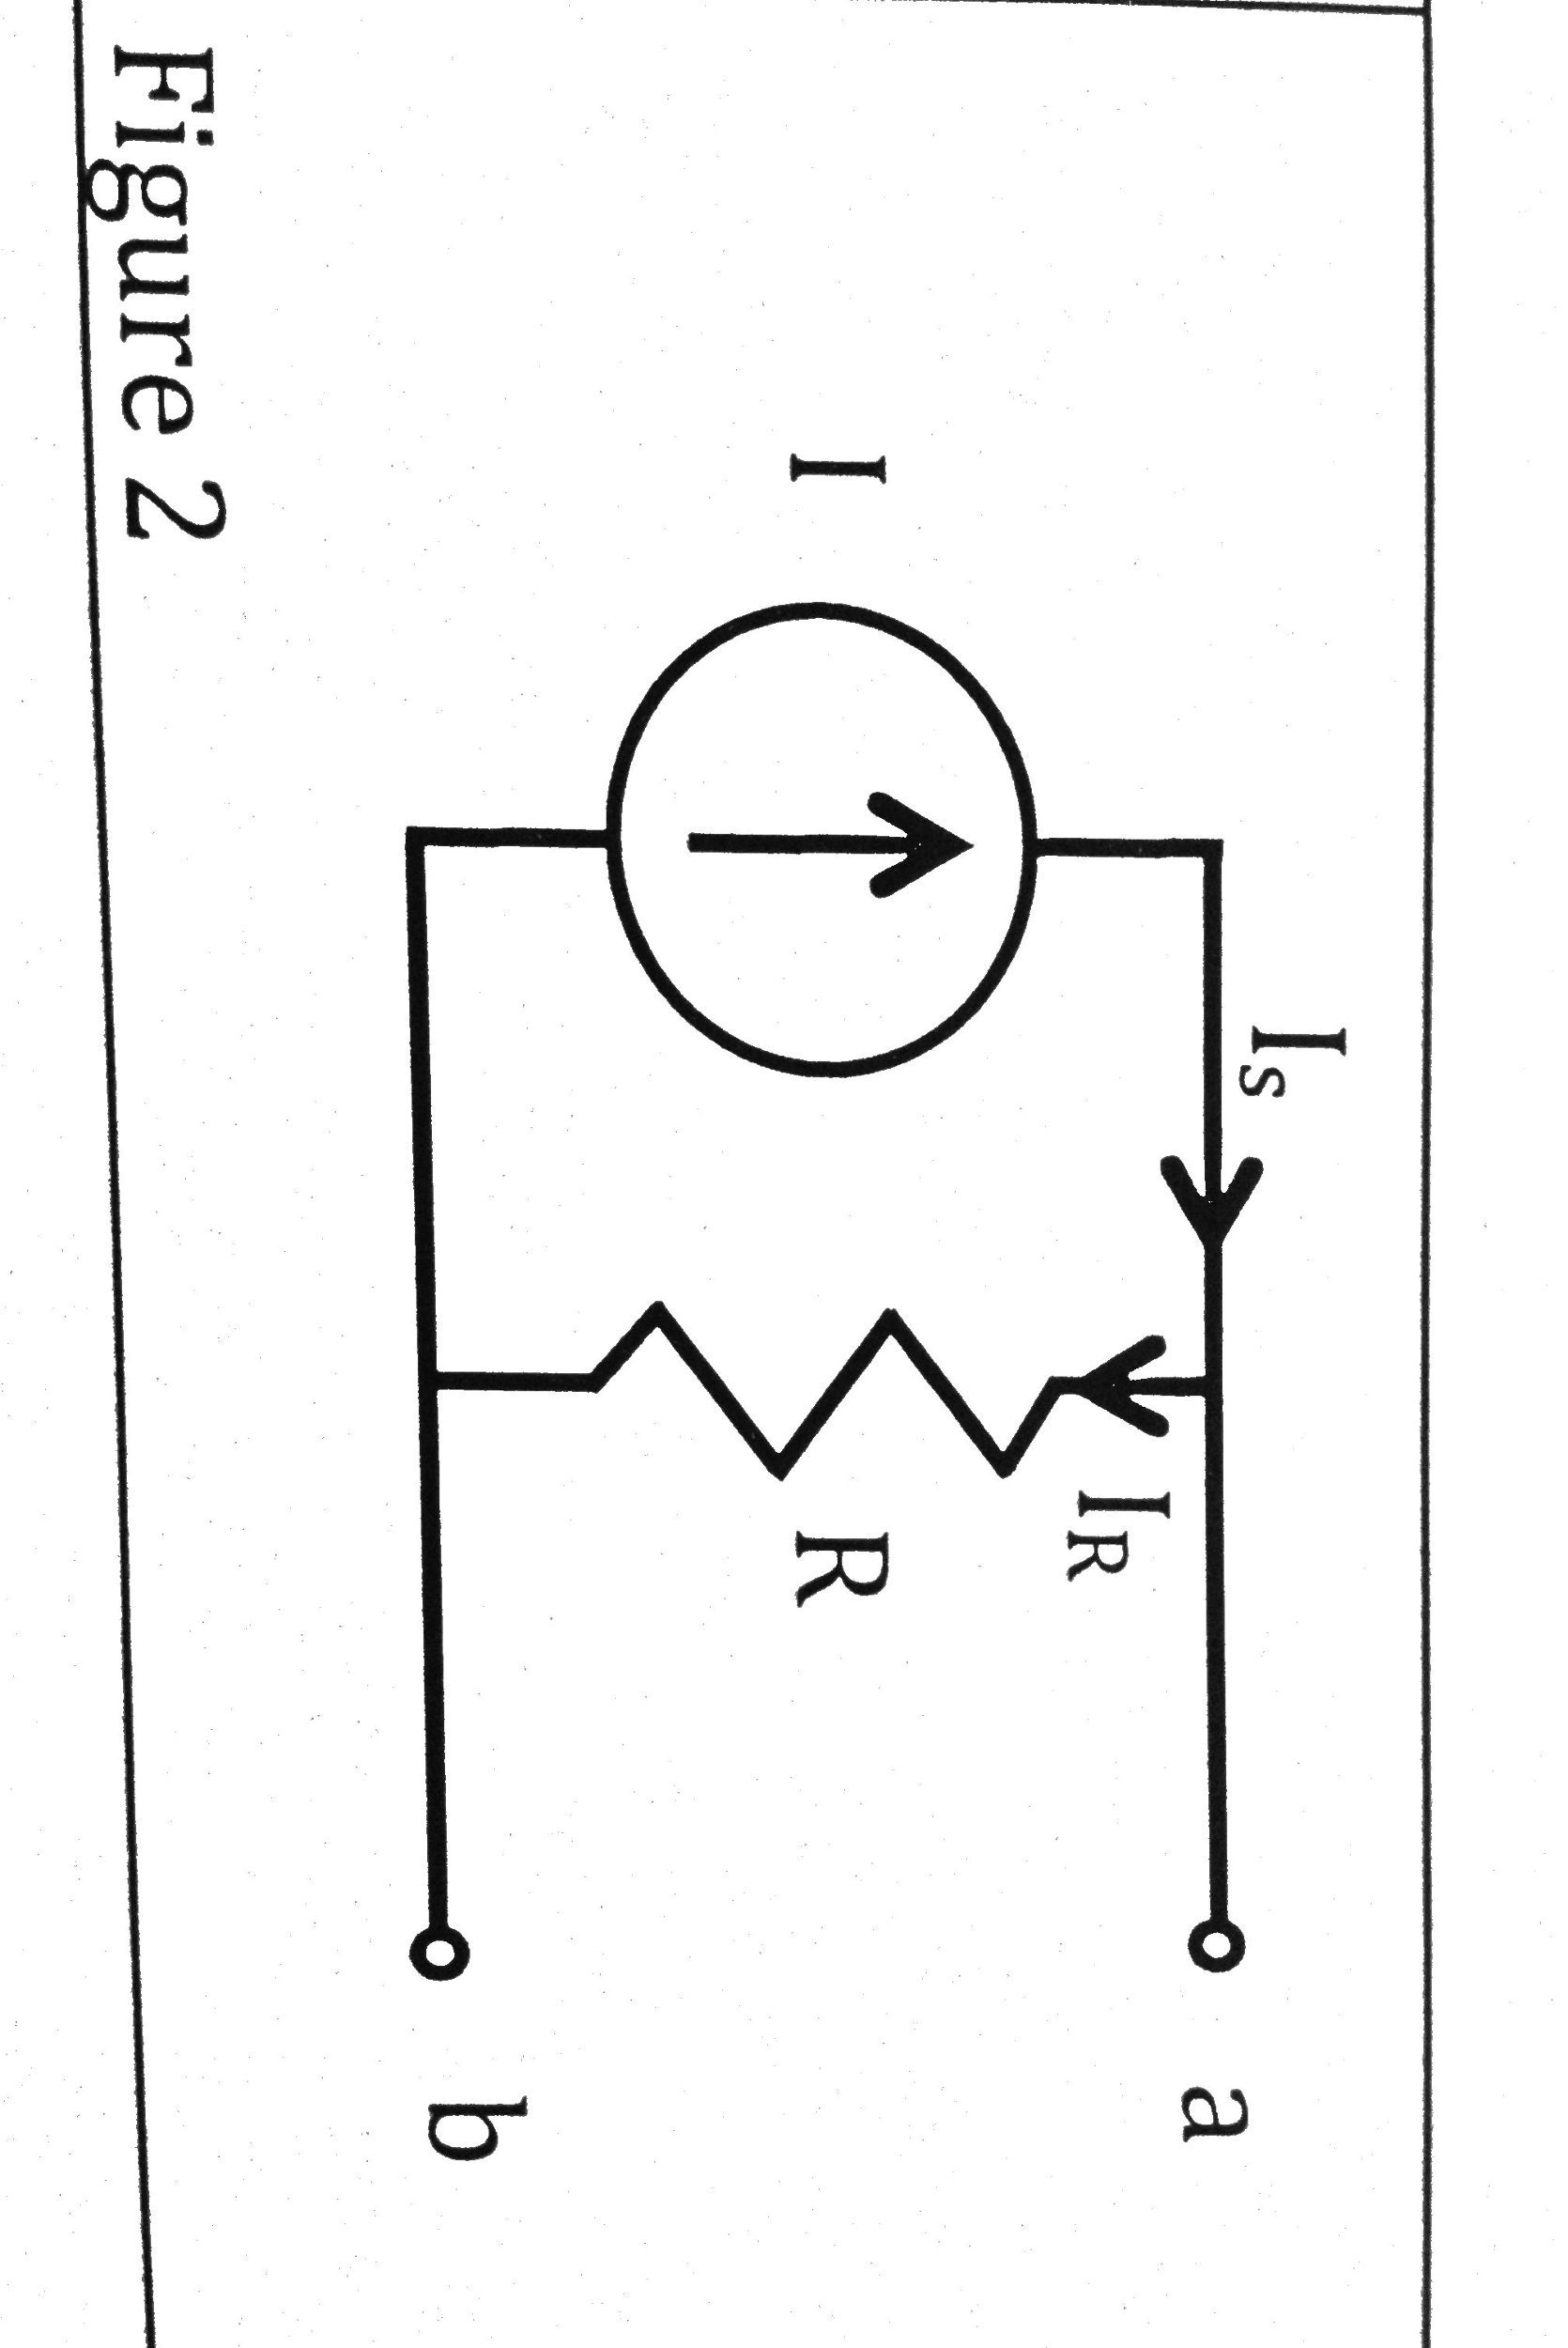 In Figure 2, I = 2 A and R = 5 Ohms. What is Vab?